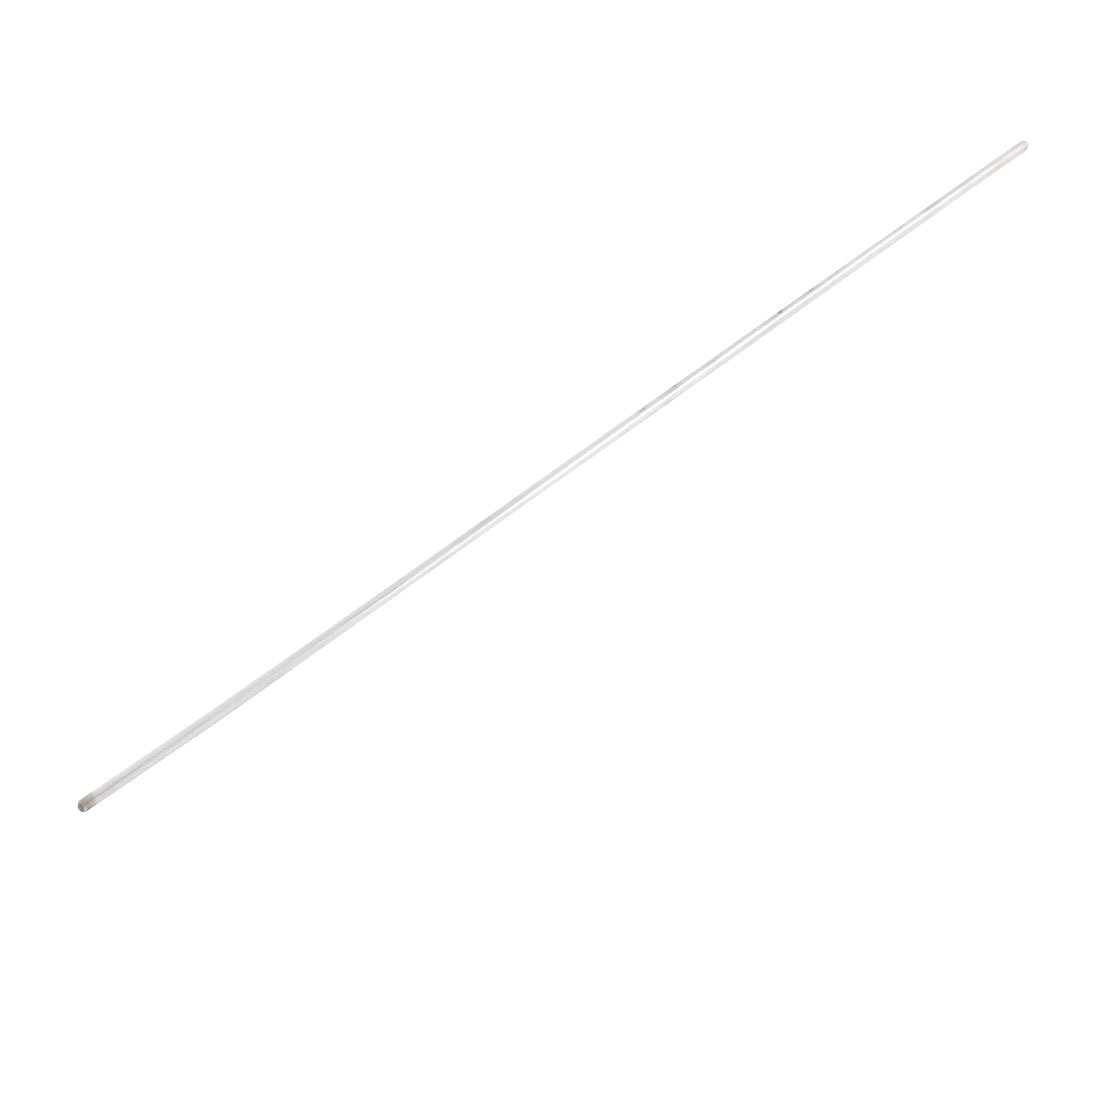 uxcell Cylinder Chrome Plated Linear Shaft 2.2mm x 250mm